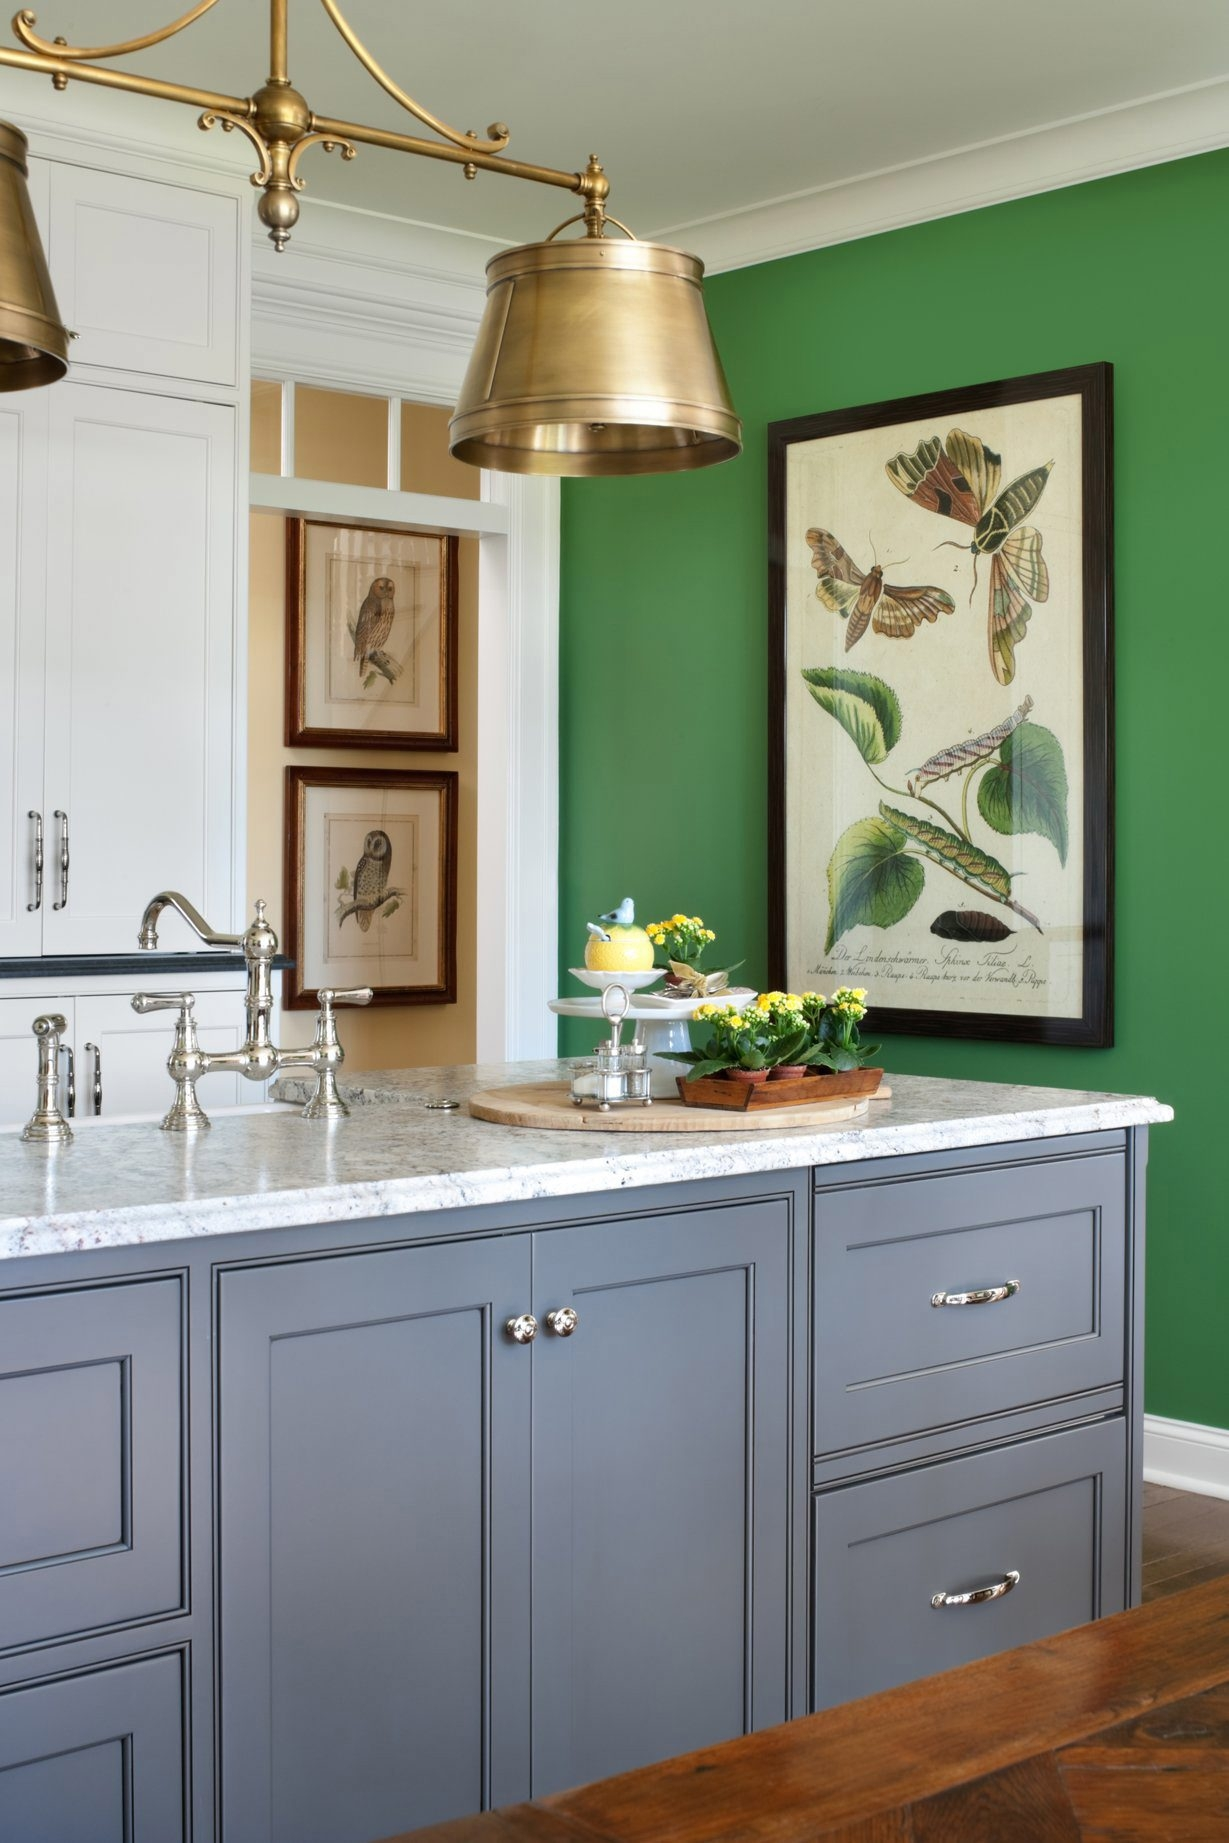 A fresh green wall in the kitchen brings a bit of nature inside. The framed artwork echoes the theme.